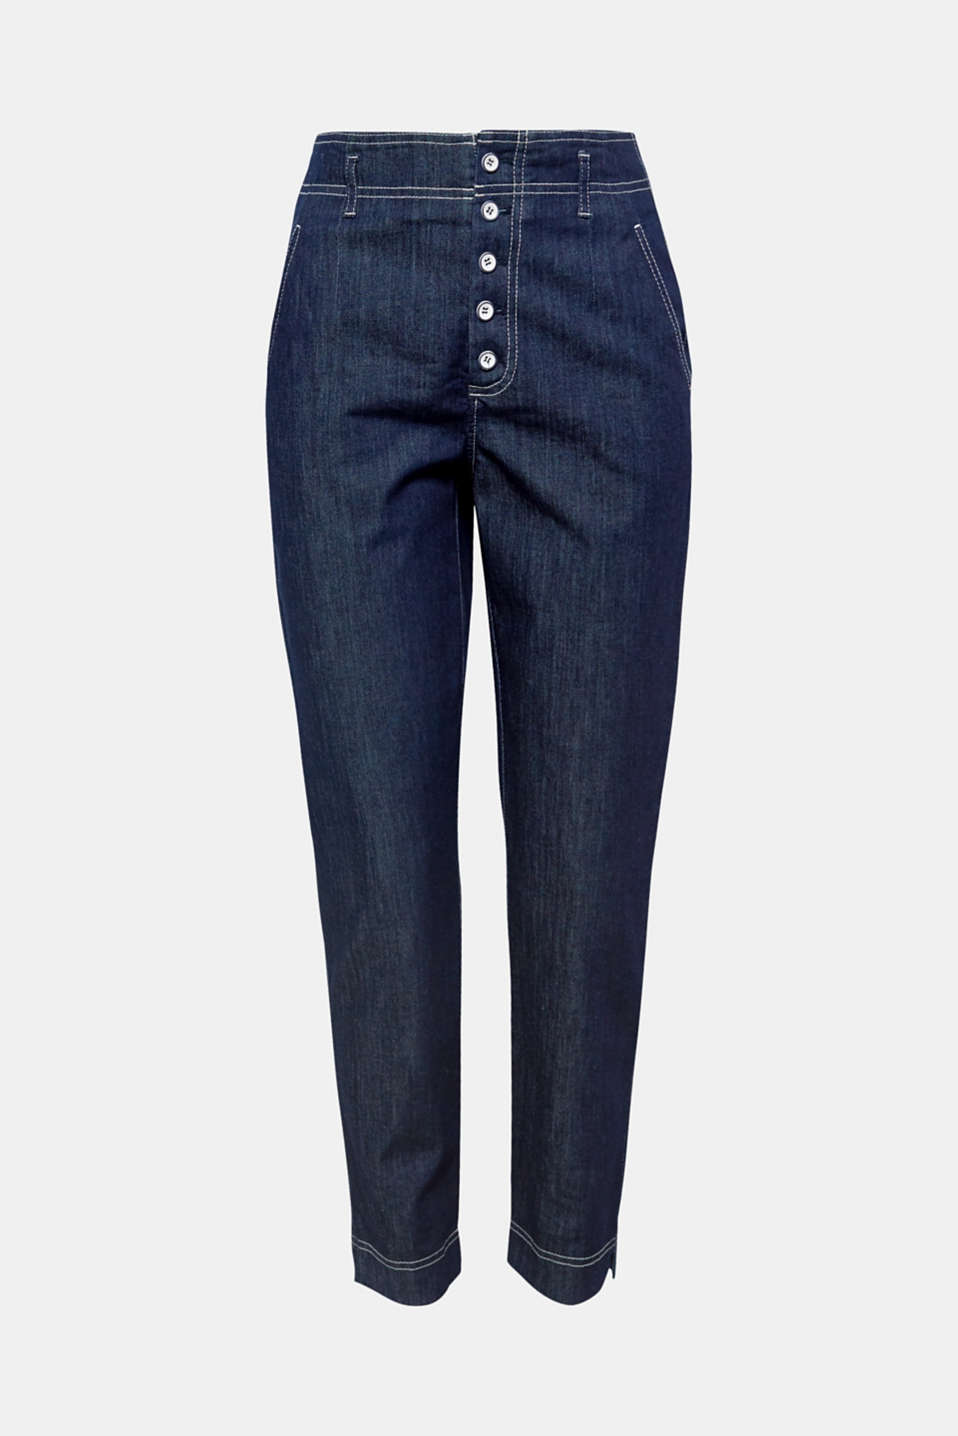 Chinos go denim: the unembellished, dark blue denim fabric, striking button fly and totally trendy cut featuring cropped legs make these chinos absolutely awesome.